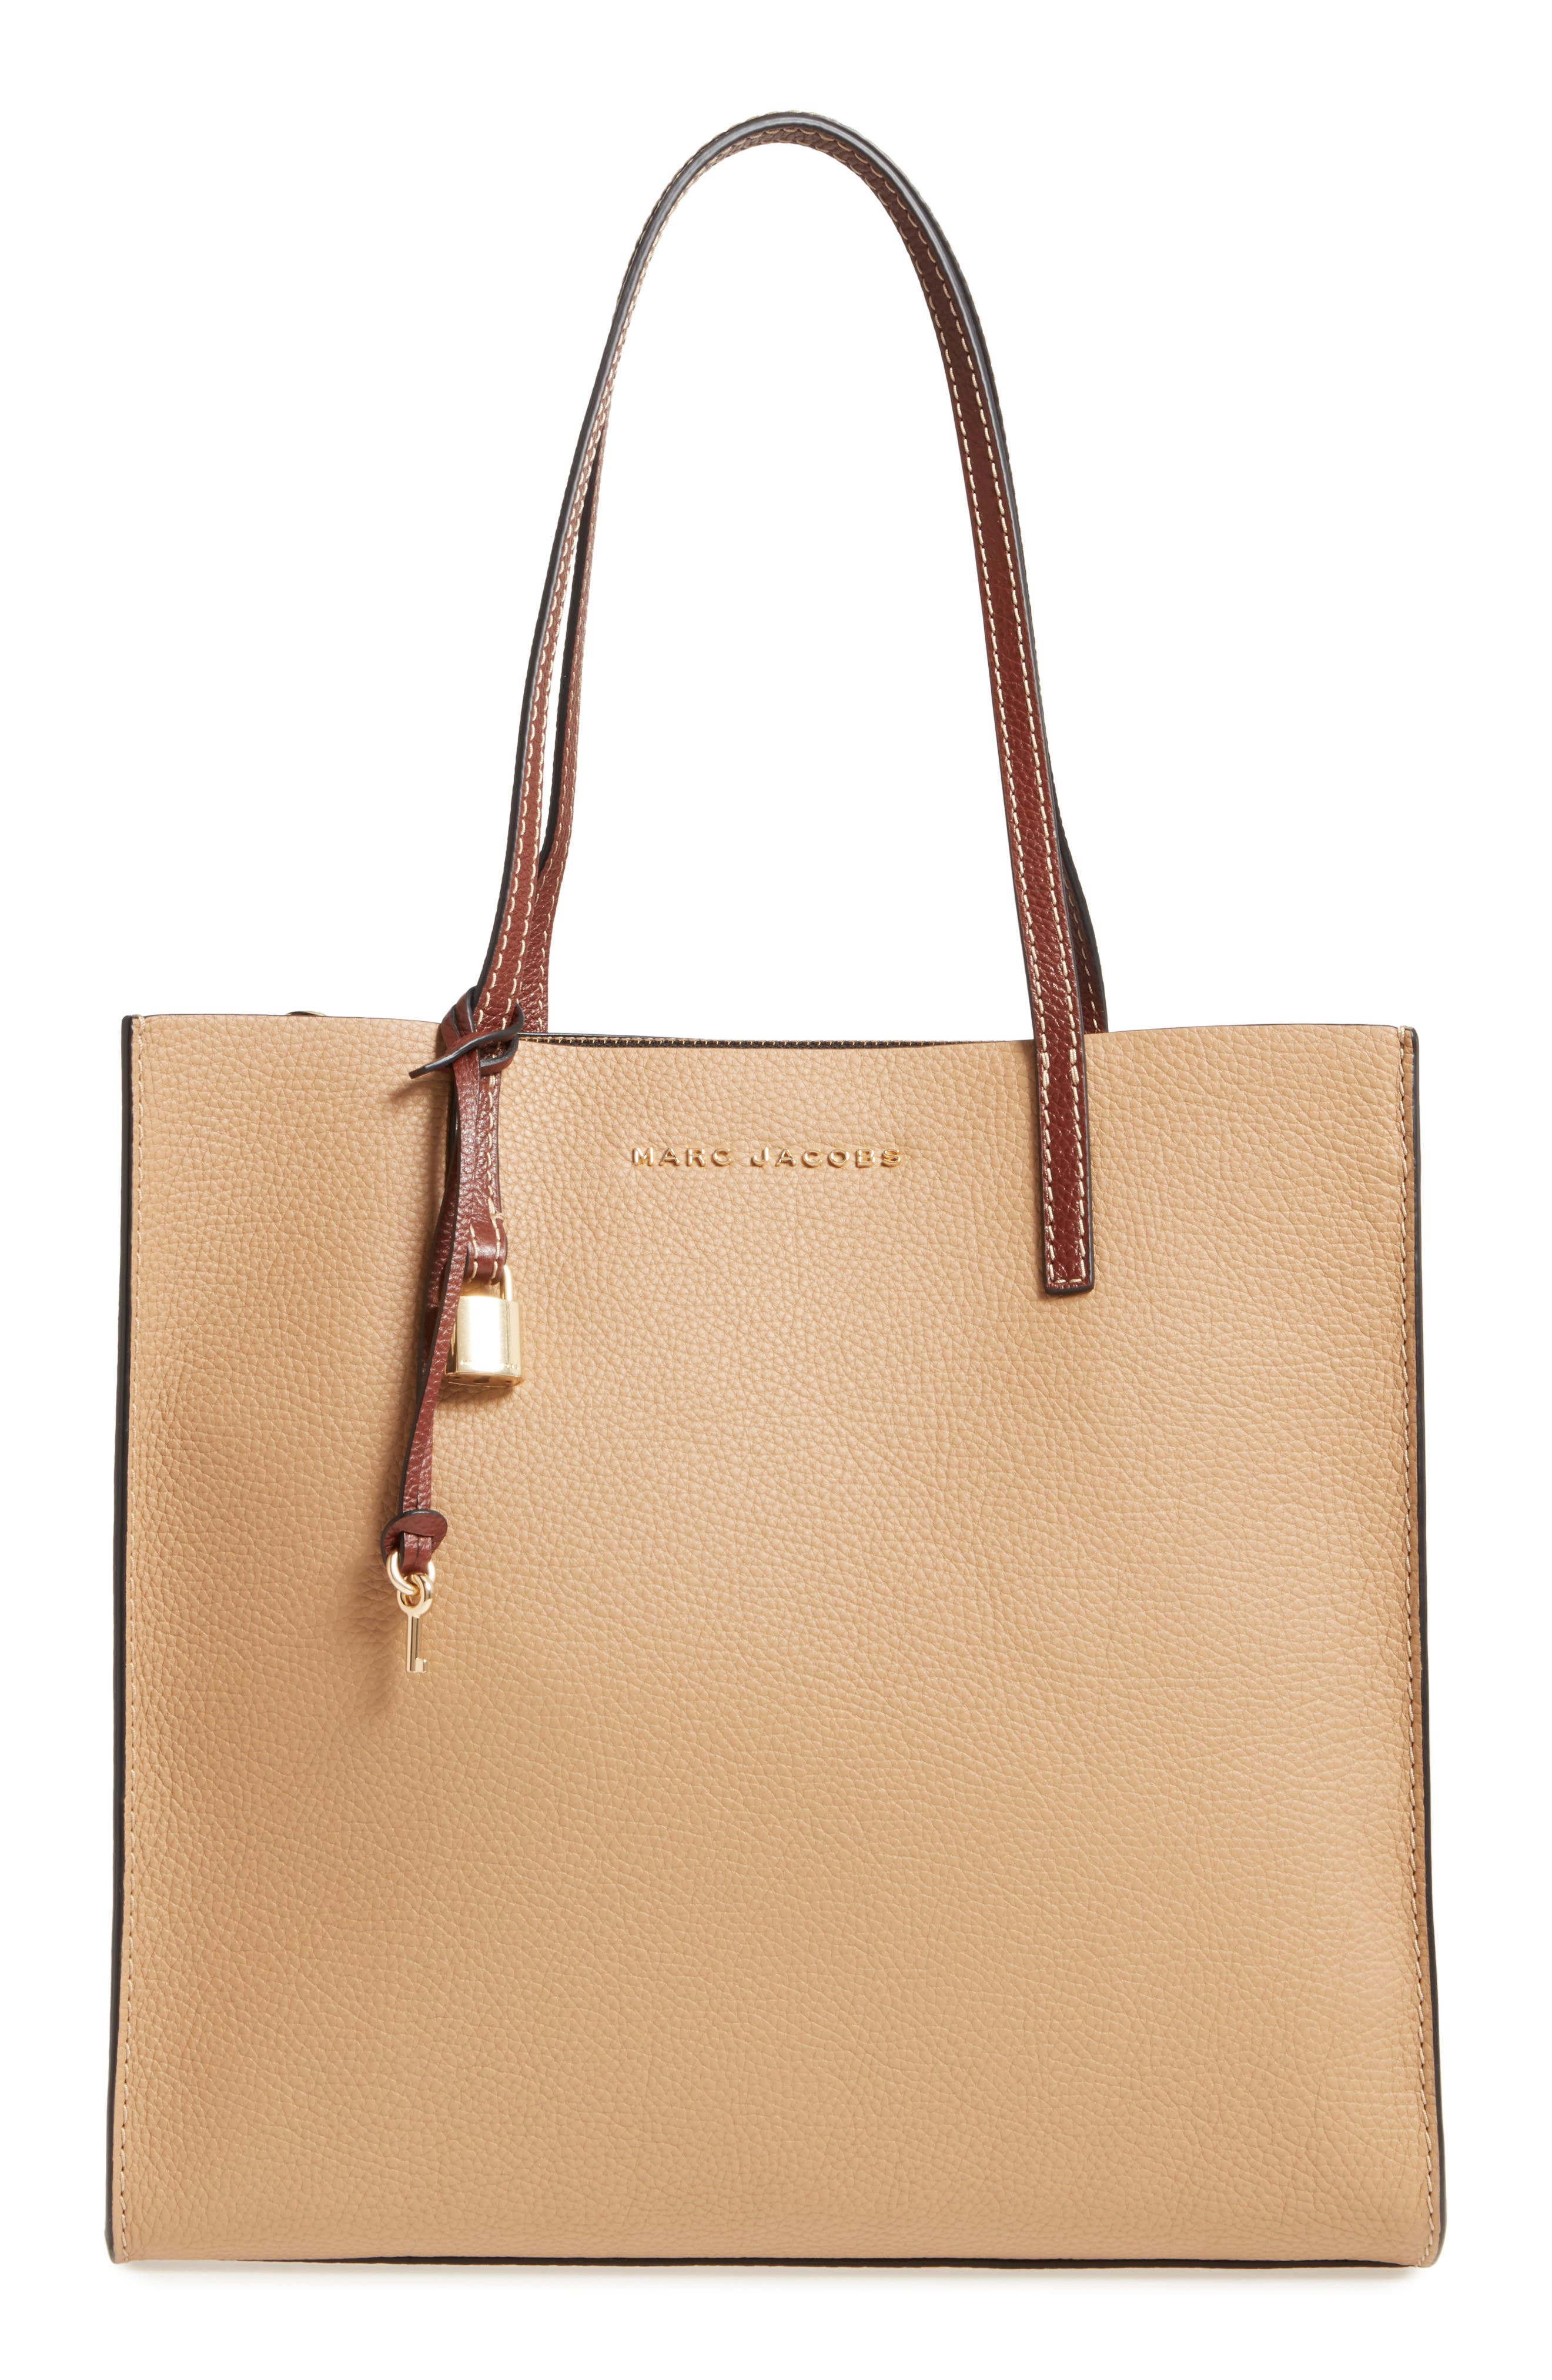 MARC JACOBS The Grind Colorblock Leather Tote